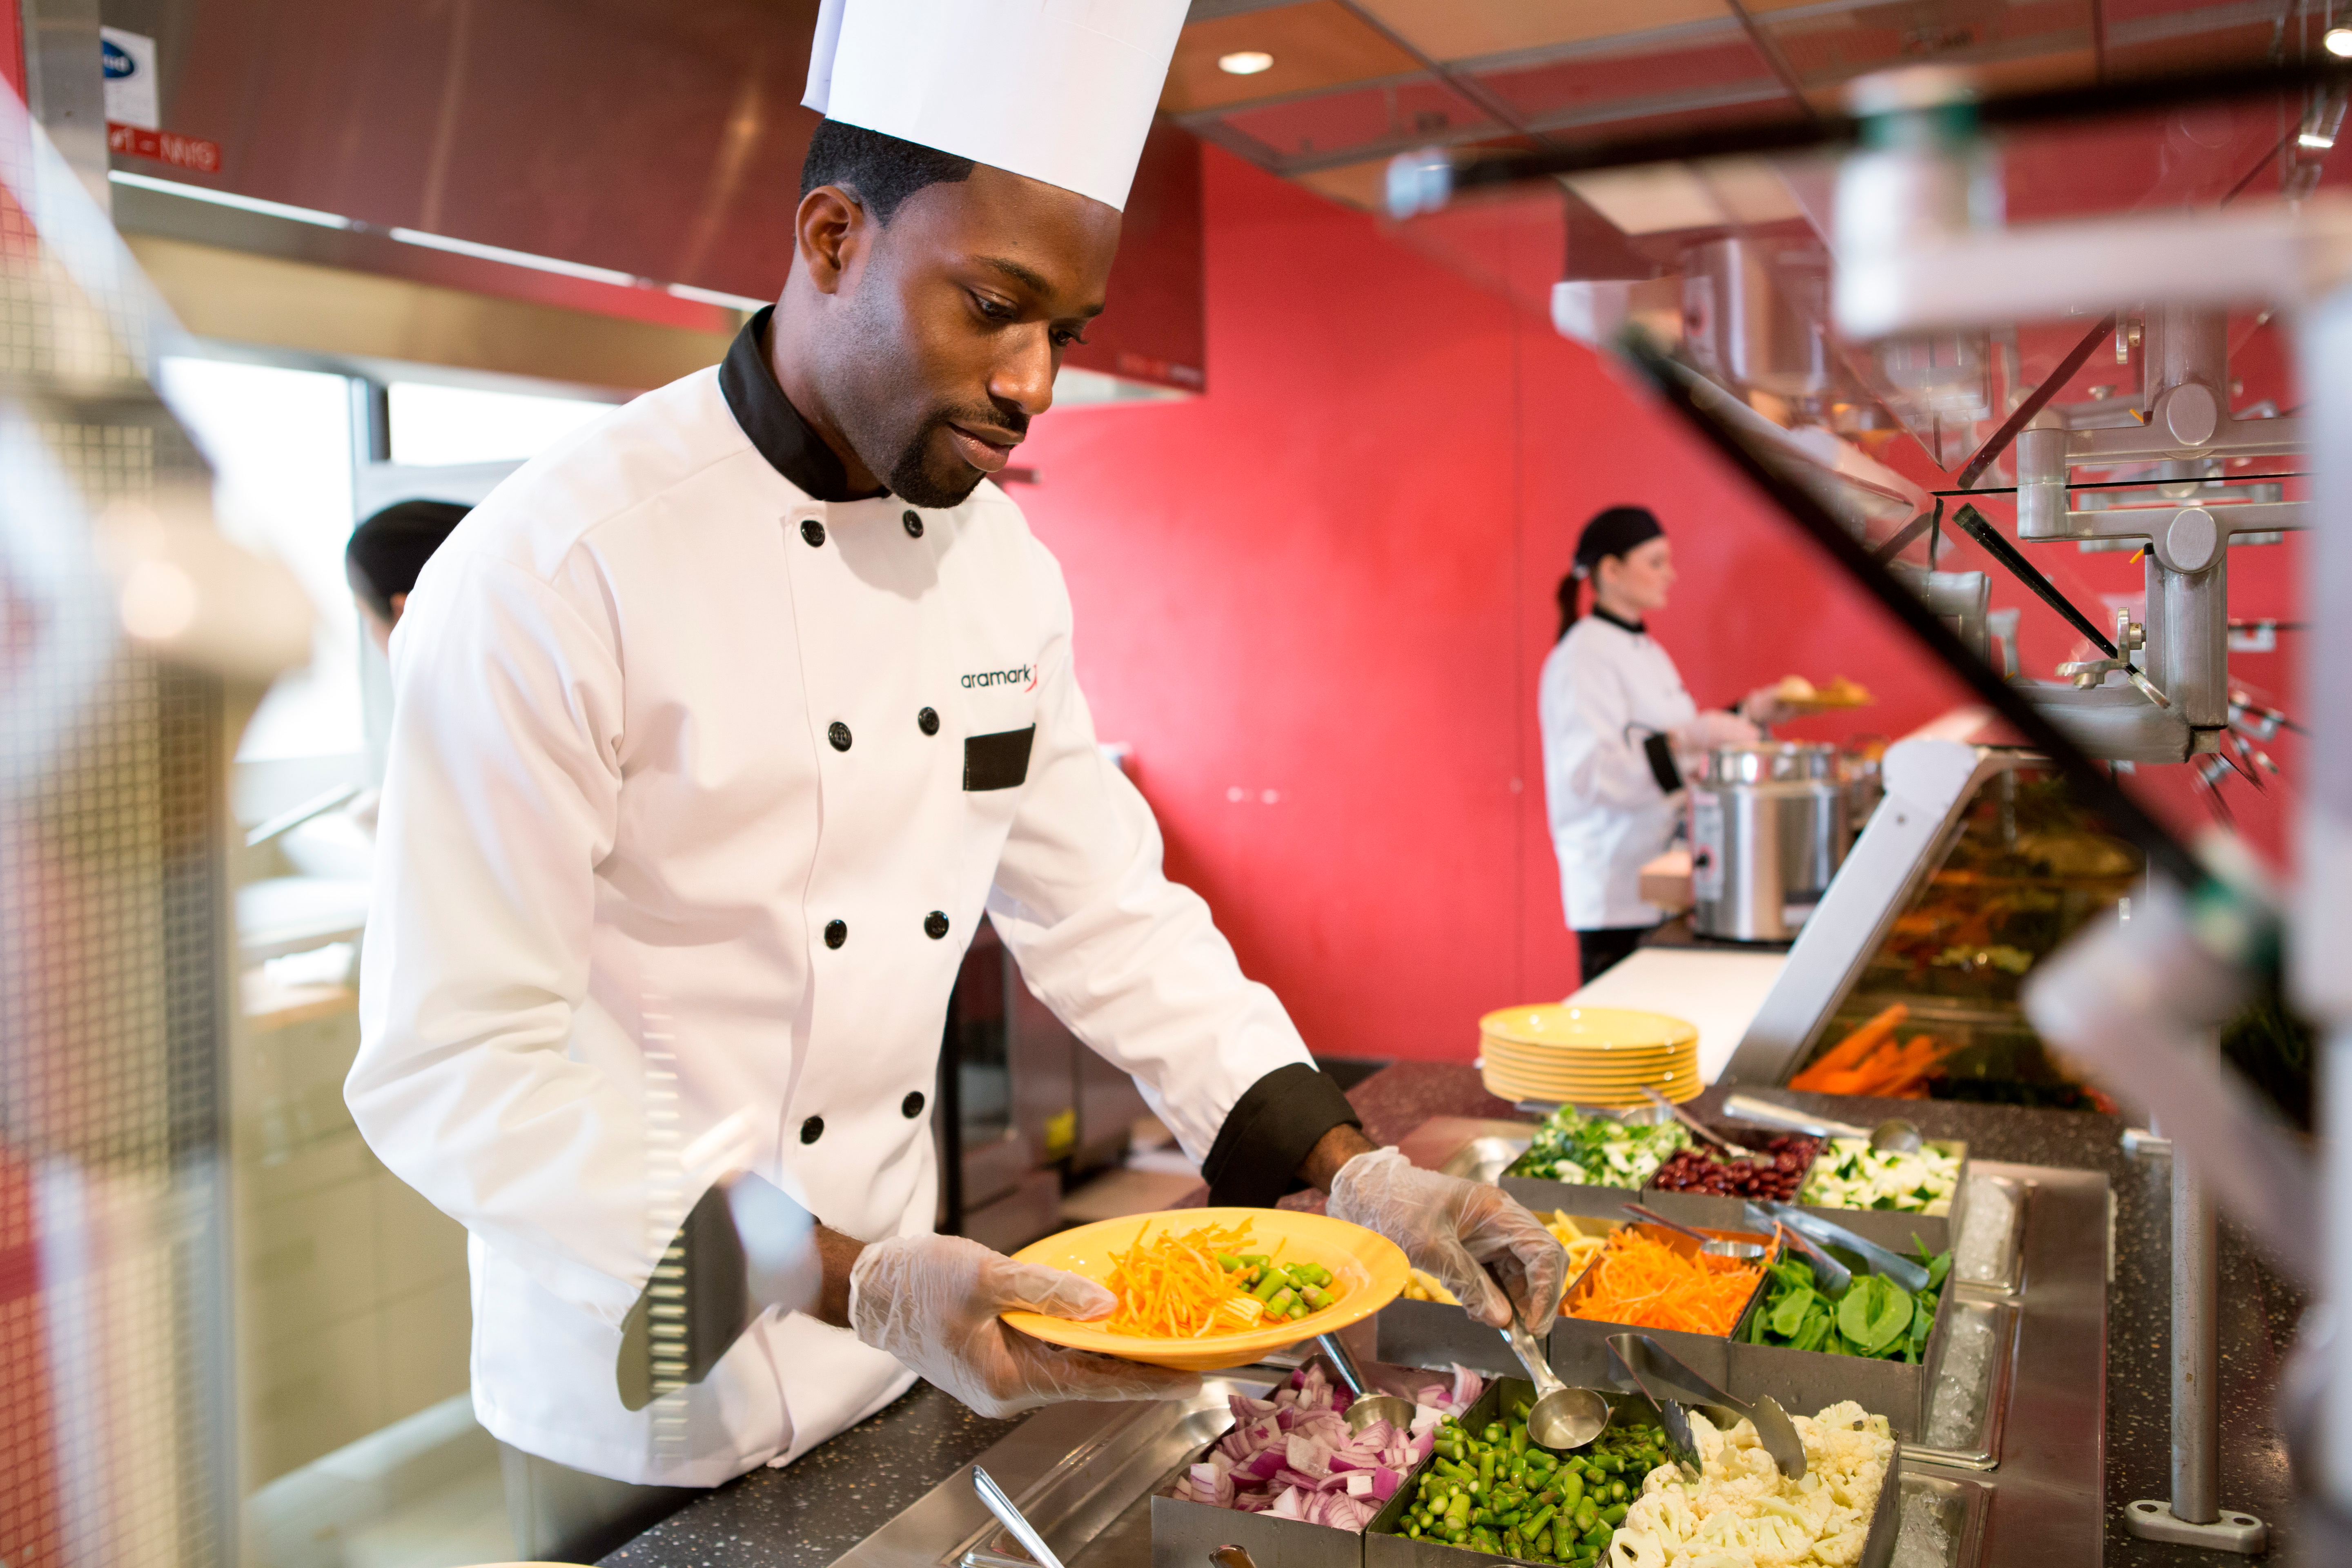 Georgia Tech Announces New Dining Services Provider Business Wire